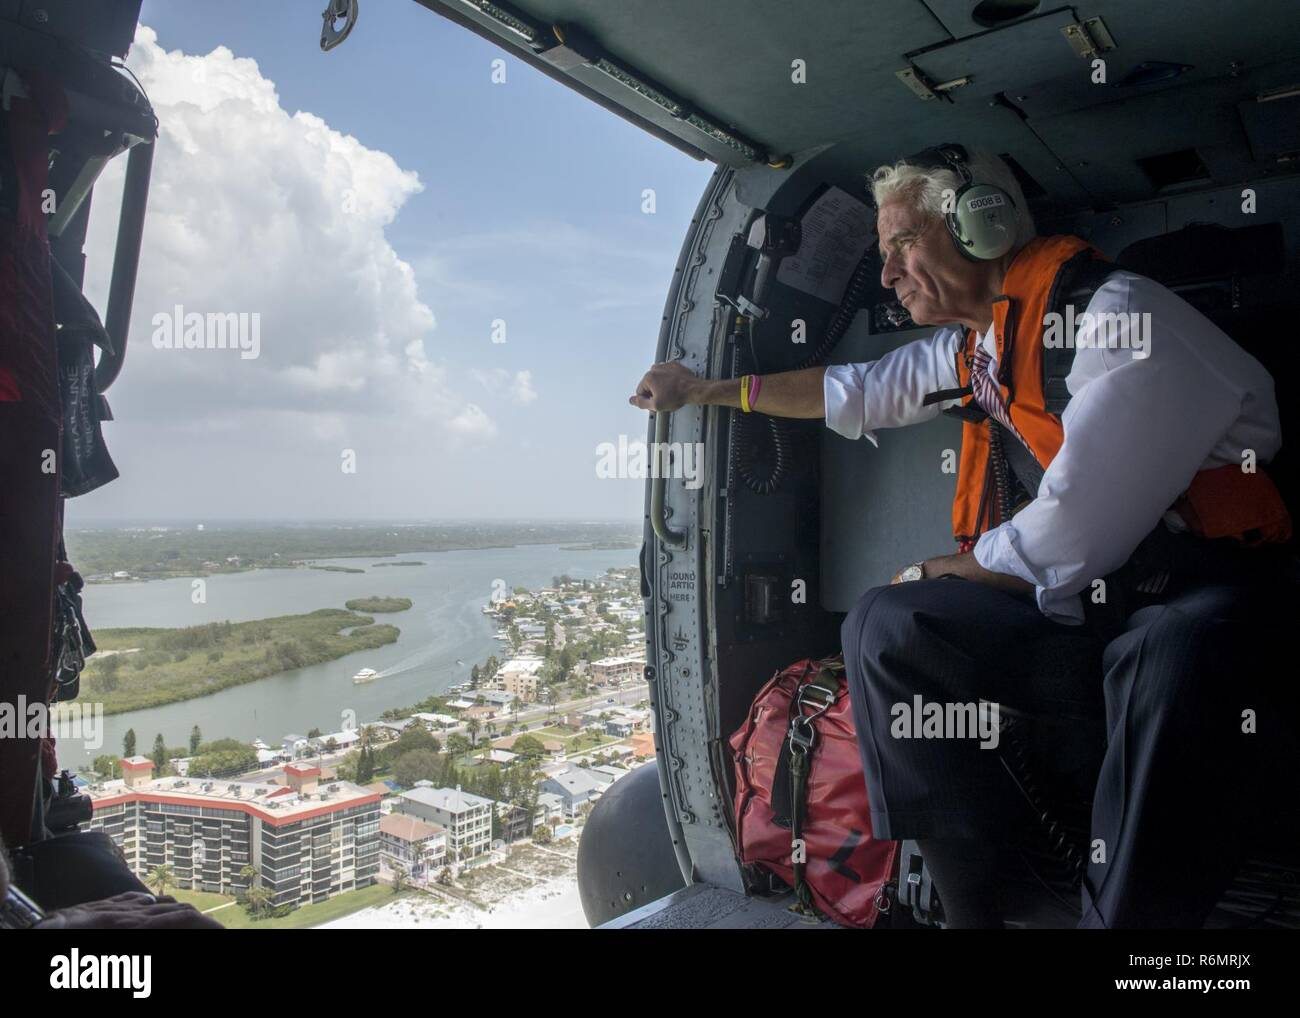 Congressman Charlie Crist, U.S. Representative for Florida's 13th District, keeps a eye on the coastline during an aerial assessment of beach erosion along Pinellas County, Florida's coast, Tuesday, May 30, 2017. Coast Guard Air Station Clearwater MH-60 Jayhawk helicopter crew members provided the overflight for the congressman and Army Corps of Engineers personnel. U.S. Coast Guard by Petty Officer 1st Class Michael De Nyse - Stock Image